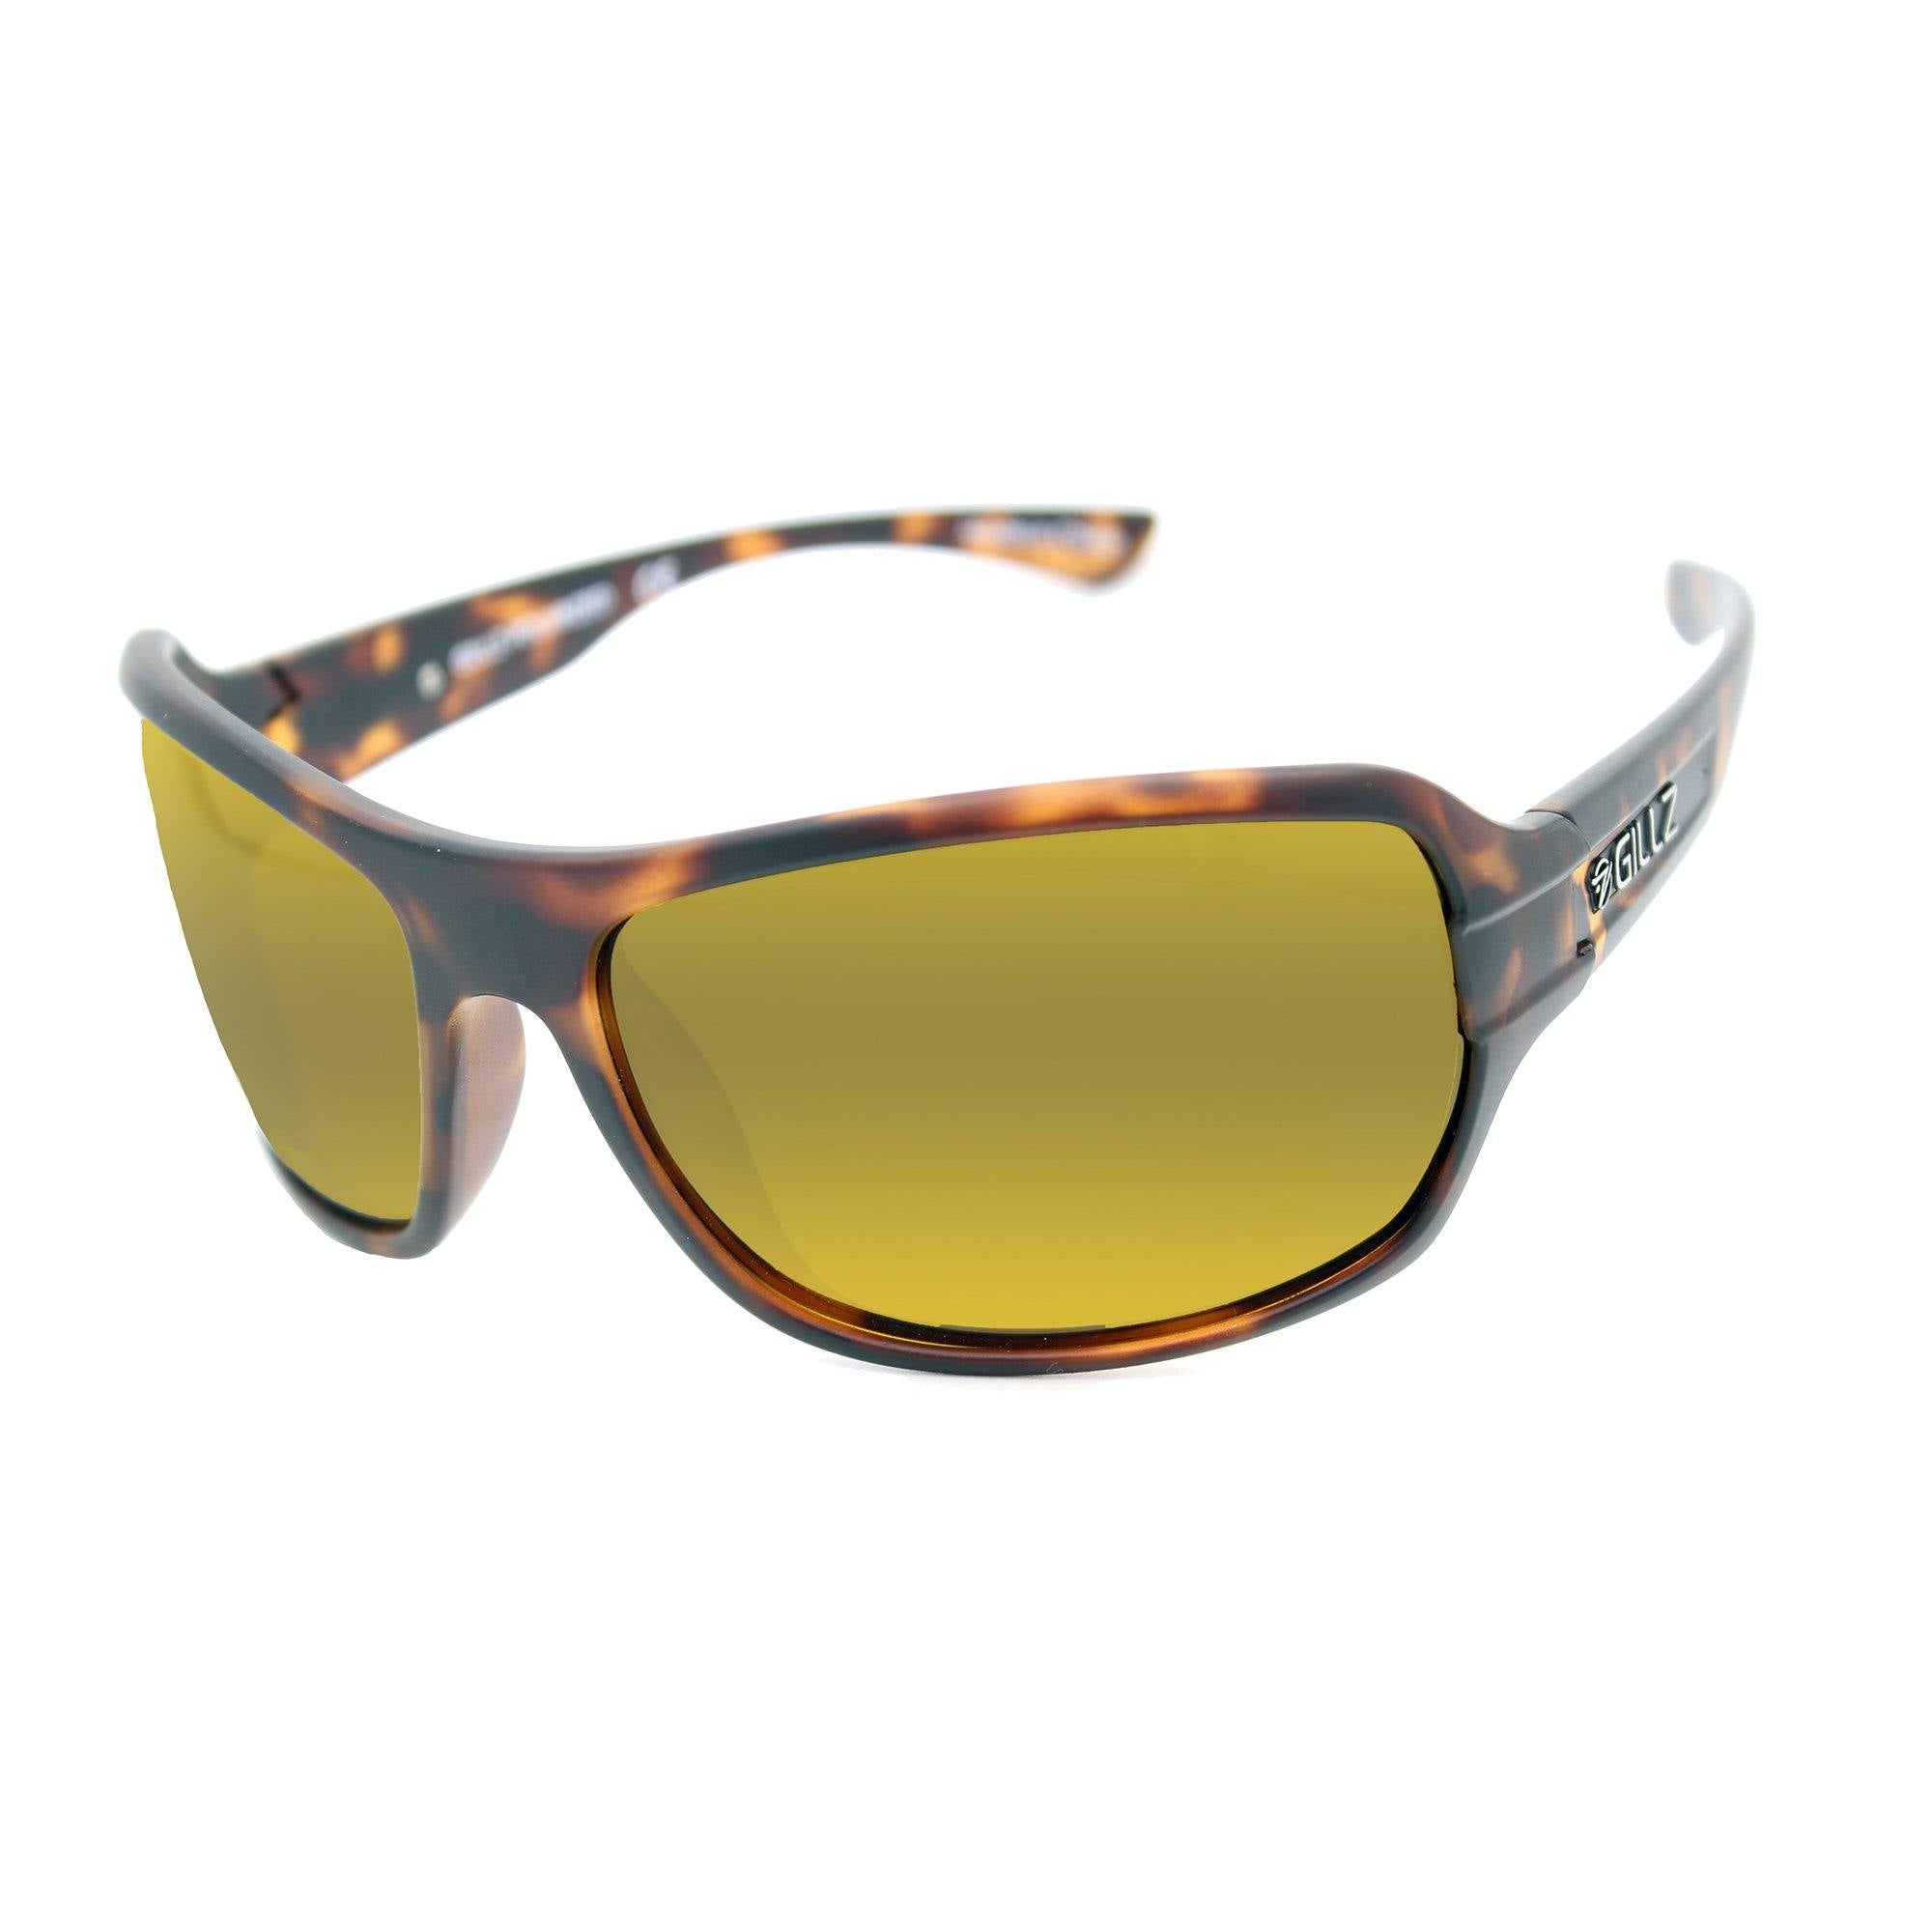 Jerkbait 102 Sunglasses - Sunrise Lens